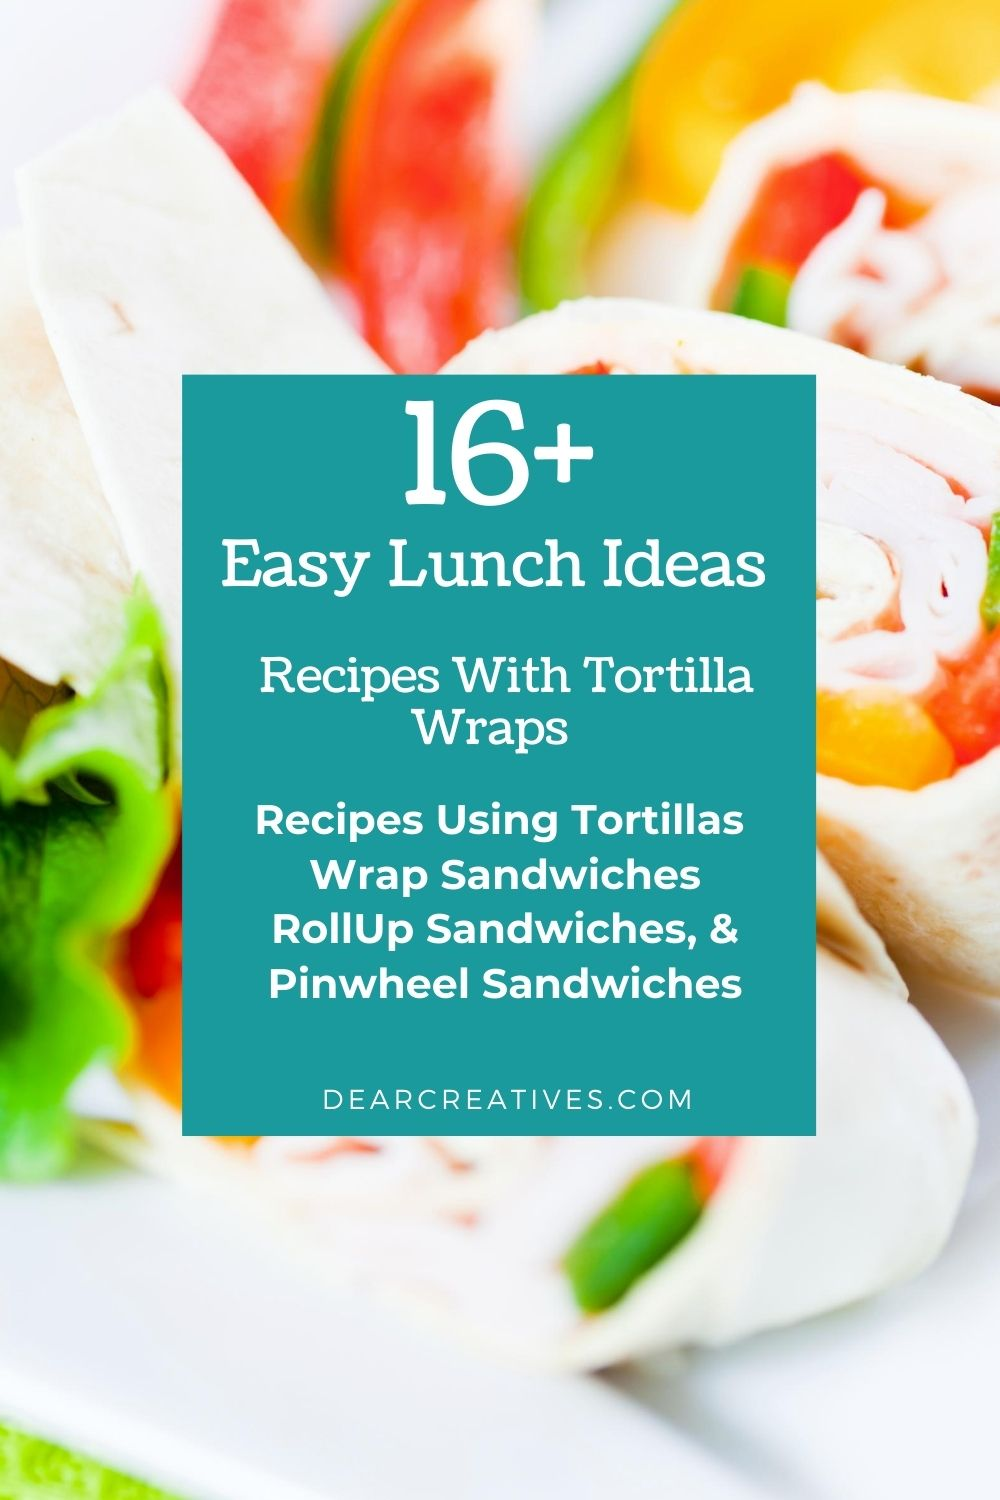 Recipes With Tortilla Wraps -16+ Easy Lunch Ideas